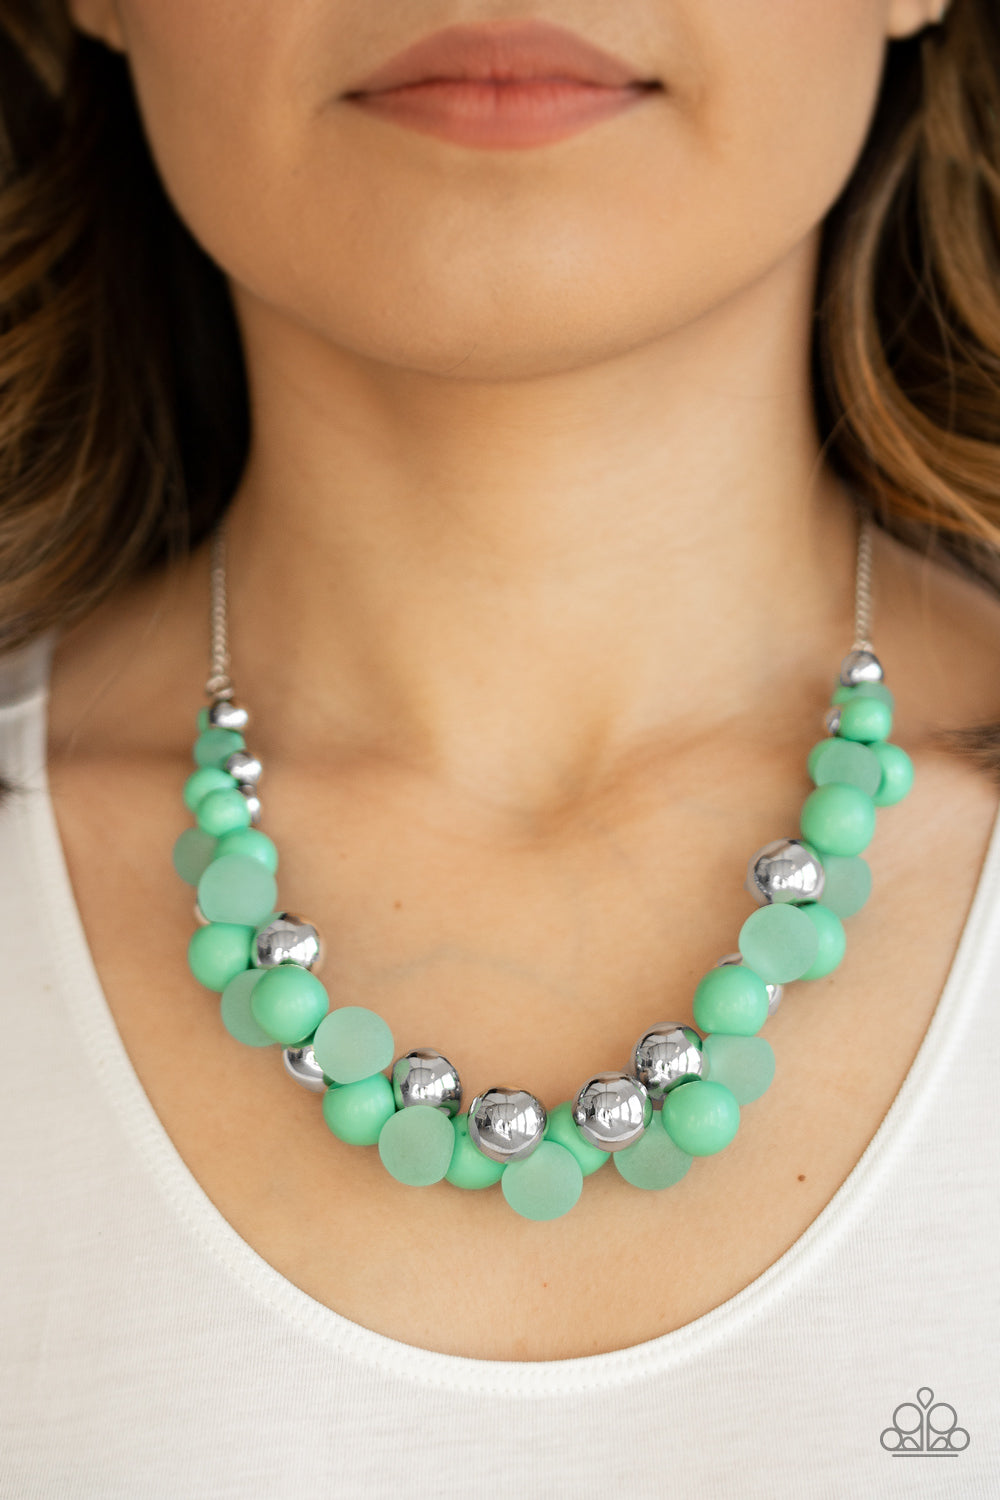 Paparazzi Jewelry & Accessories - Bubbly Brilliance - Green Necklace. Bling By Titia Boutique